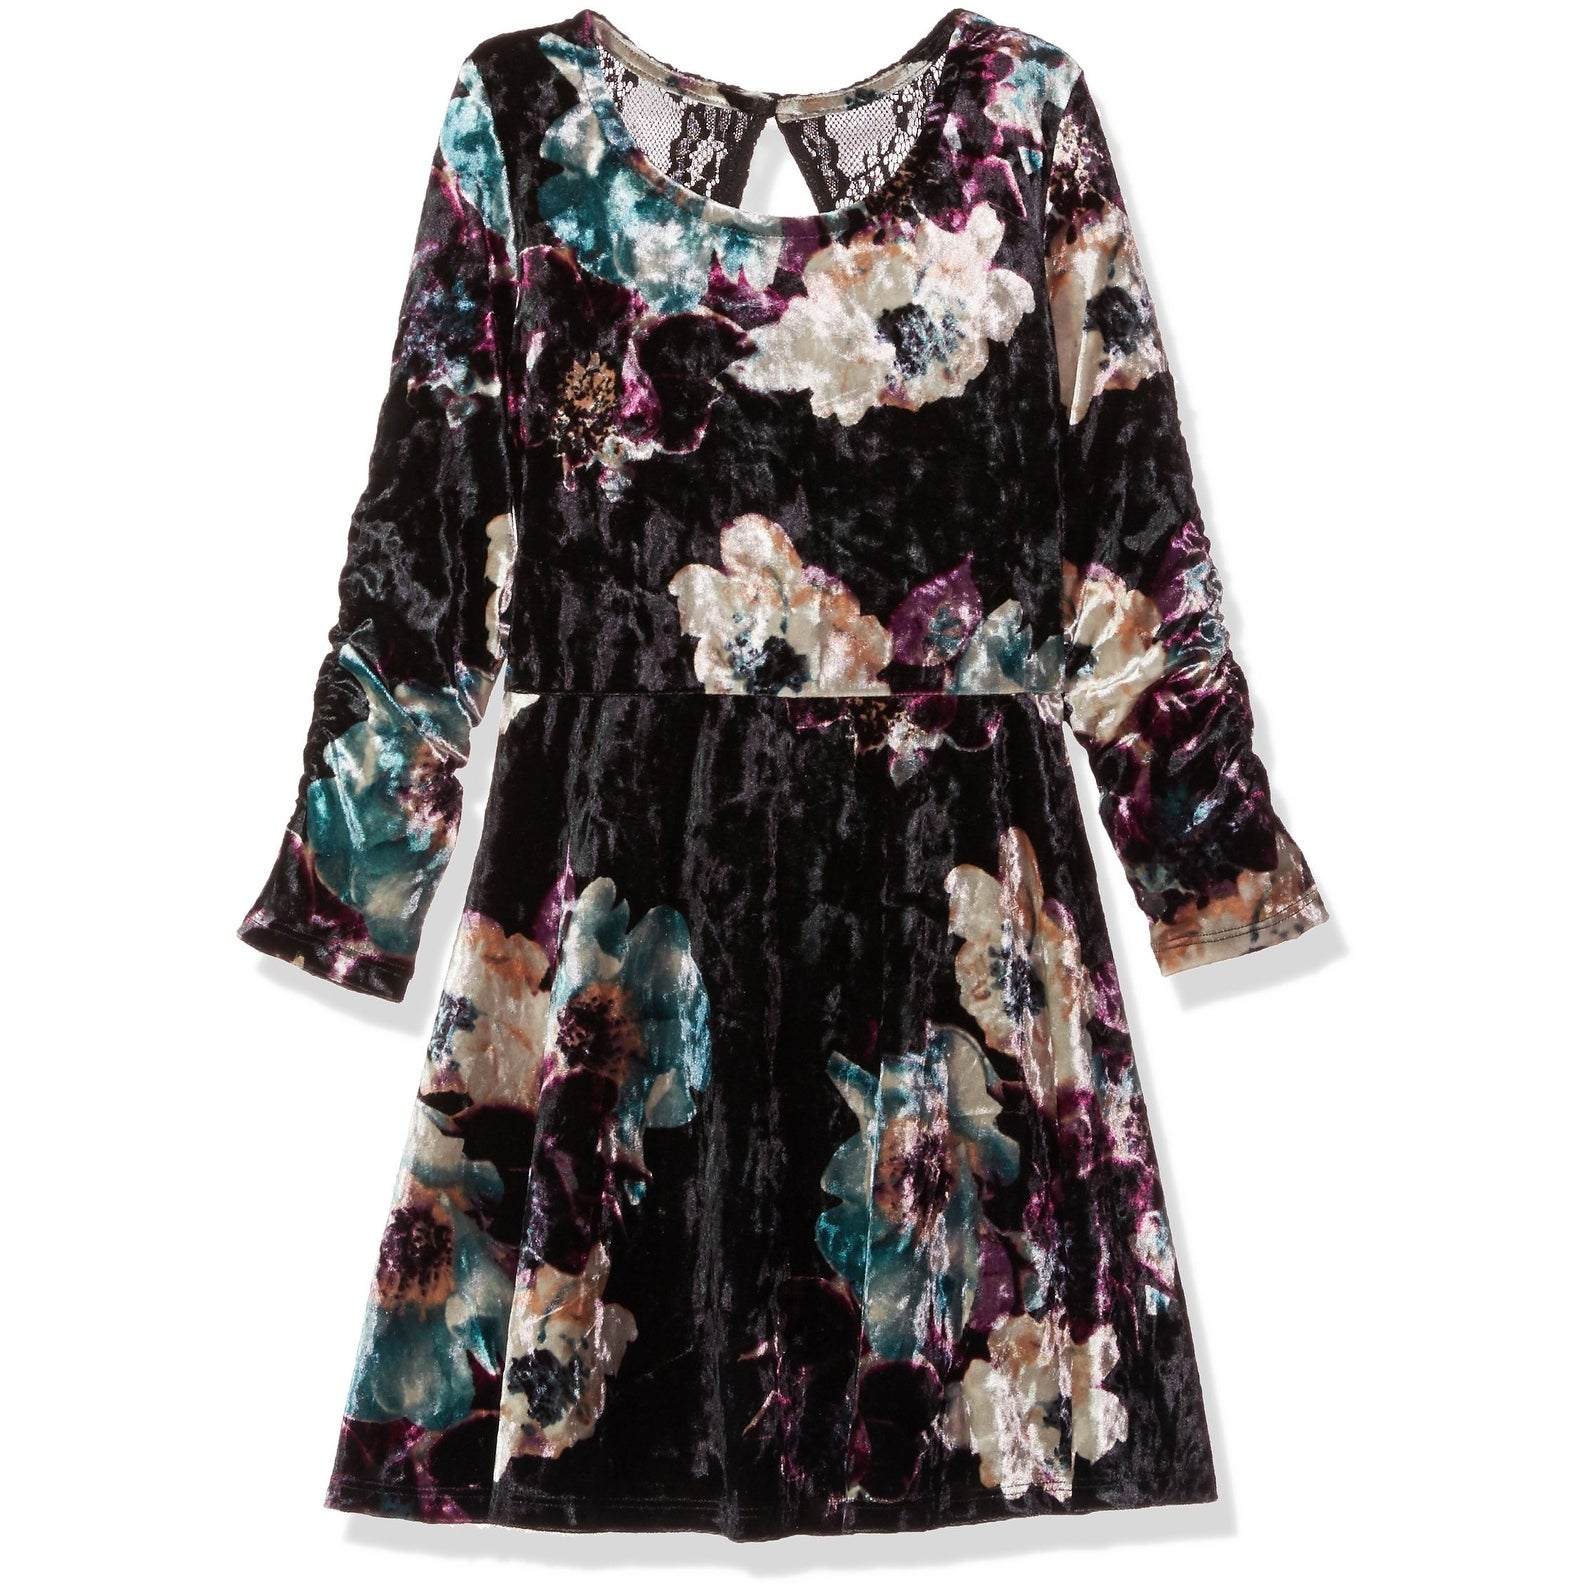 495cb5eb5f5e Shop My Michelle NEW Black Teal Girls  Size 10 Velvet Lace-Panel ...